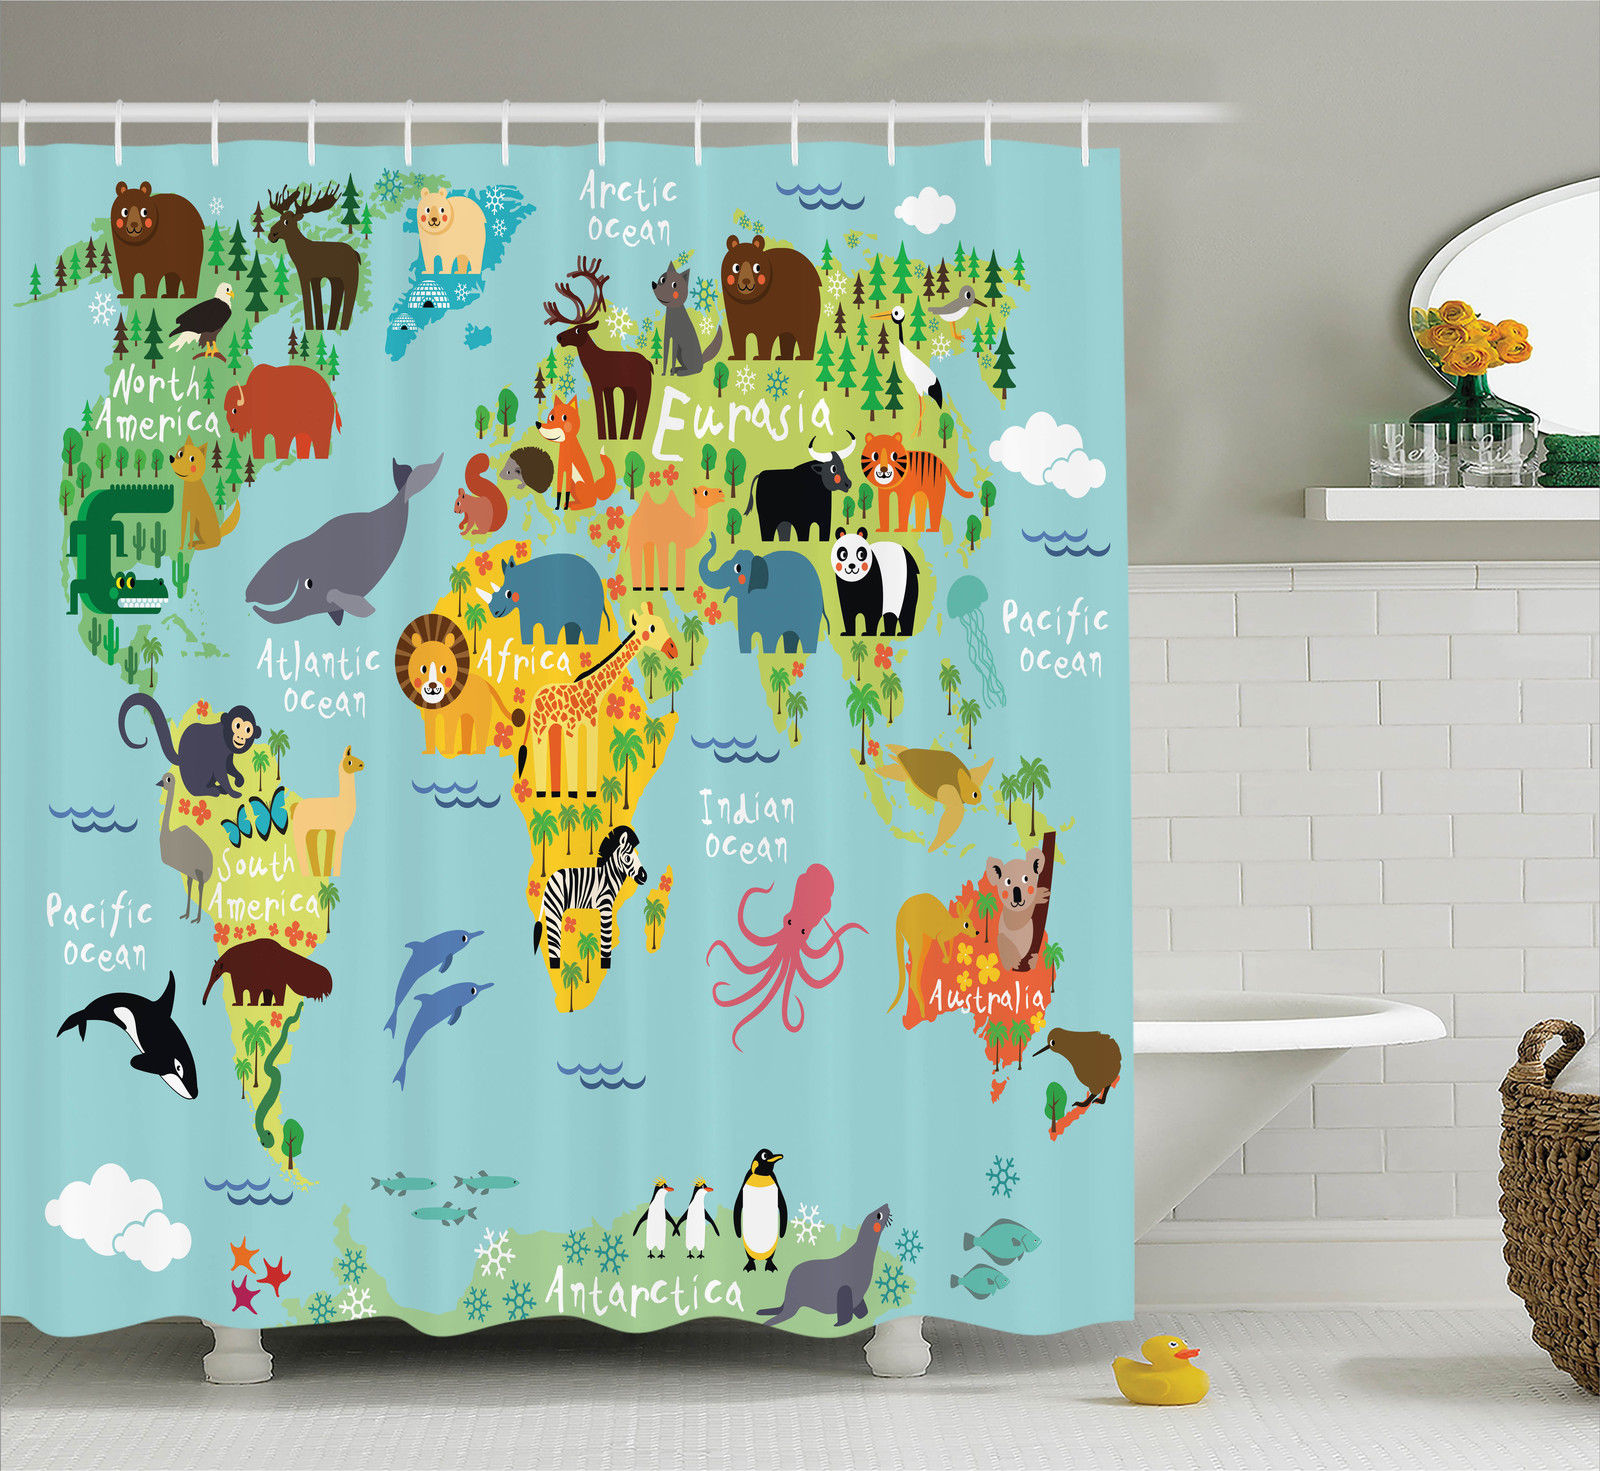 Wanderlust Decor Shower Curtain Set, Animal Map Of The World For Children And Kids Cartoon Mountains Forests, Bathroom Accessories, 69W X 70L Inches, By Ambesonne